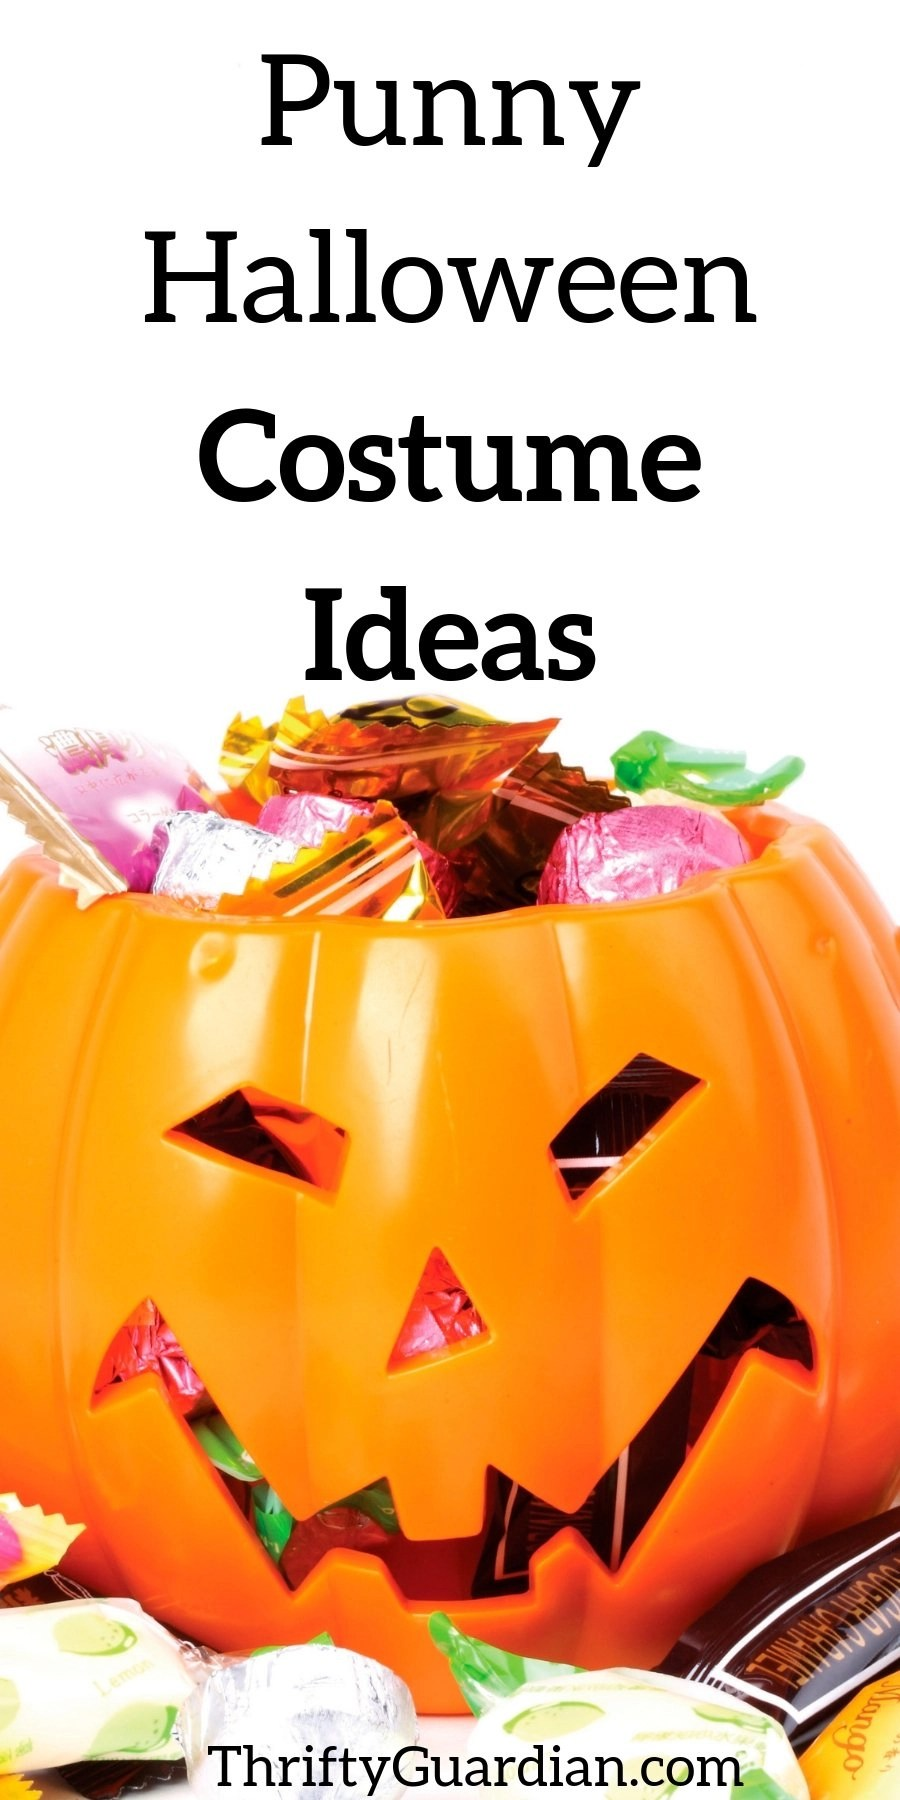 Punny Hallowen Costume Ideas